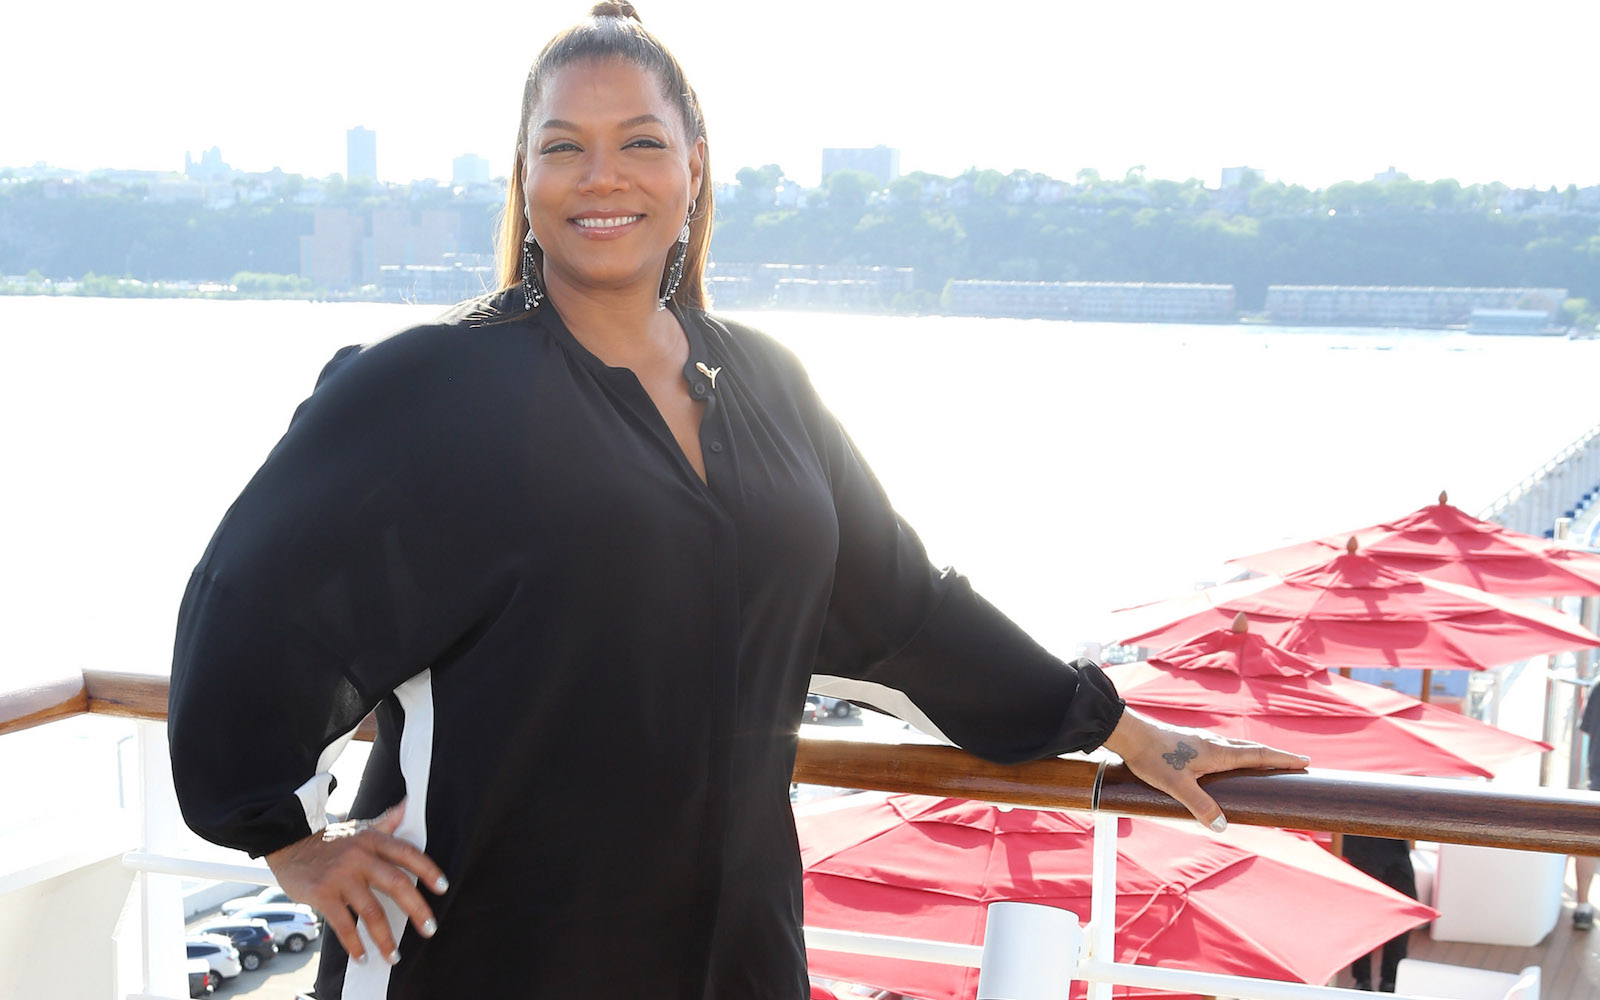 Queen Latifah on board the new Carnival Horizon cruise ship